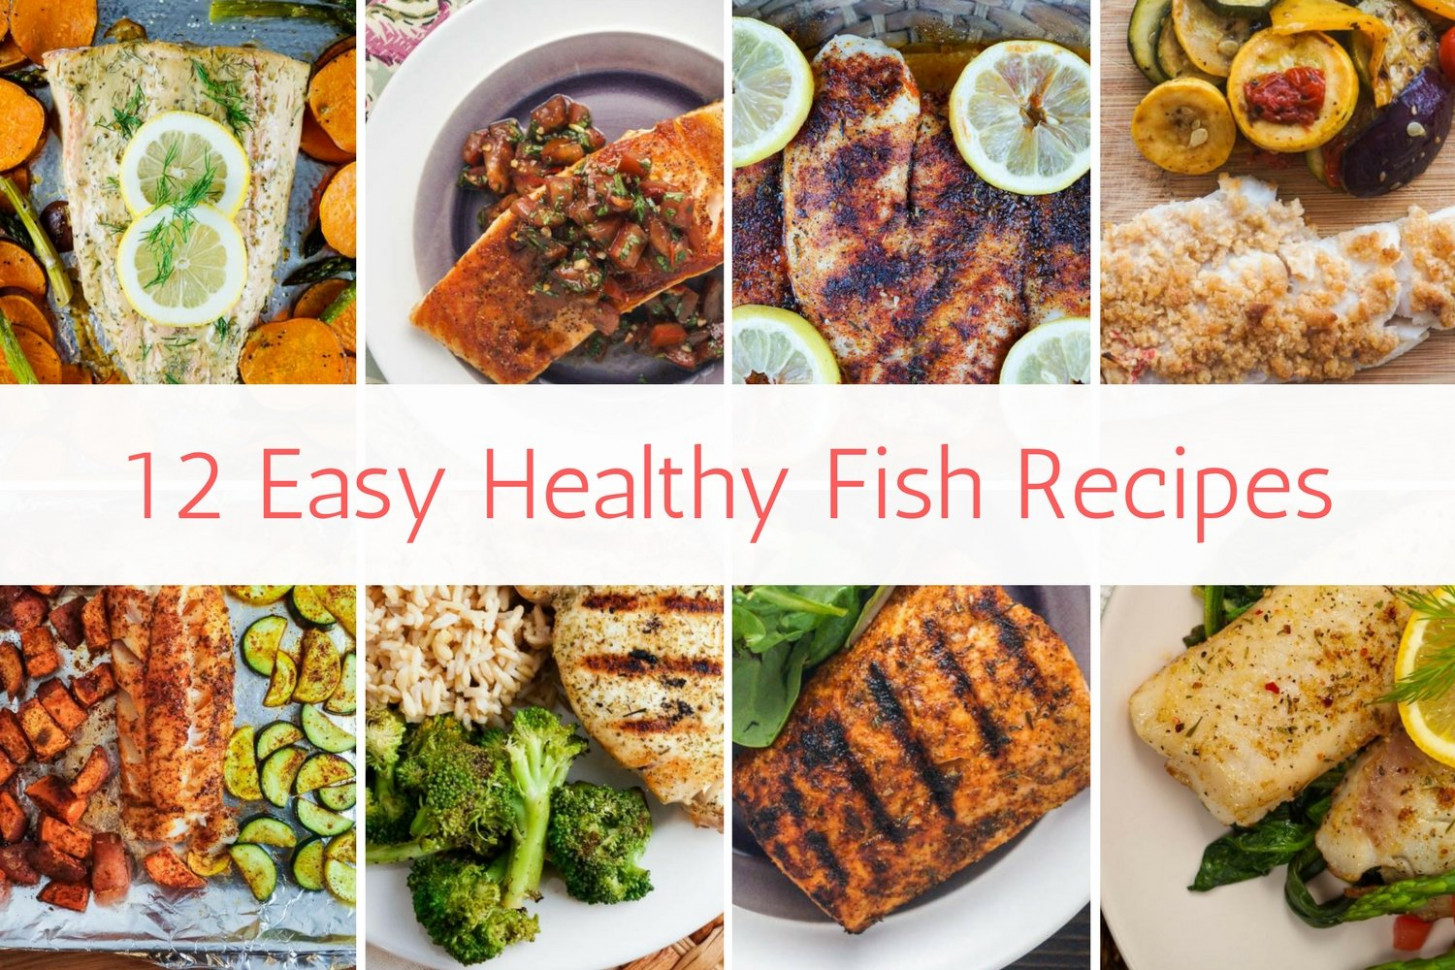 12 Easy Healthy Fish Recipes - Slender Kitchen